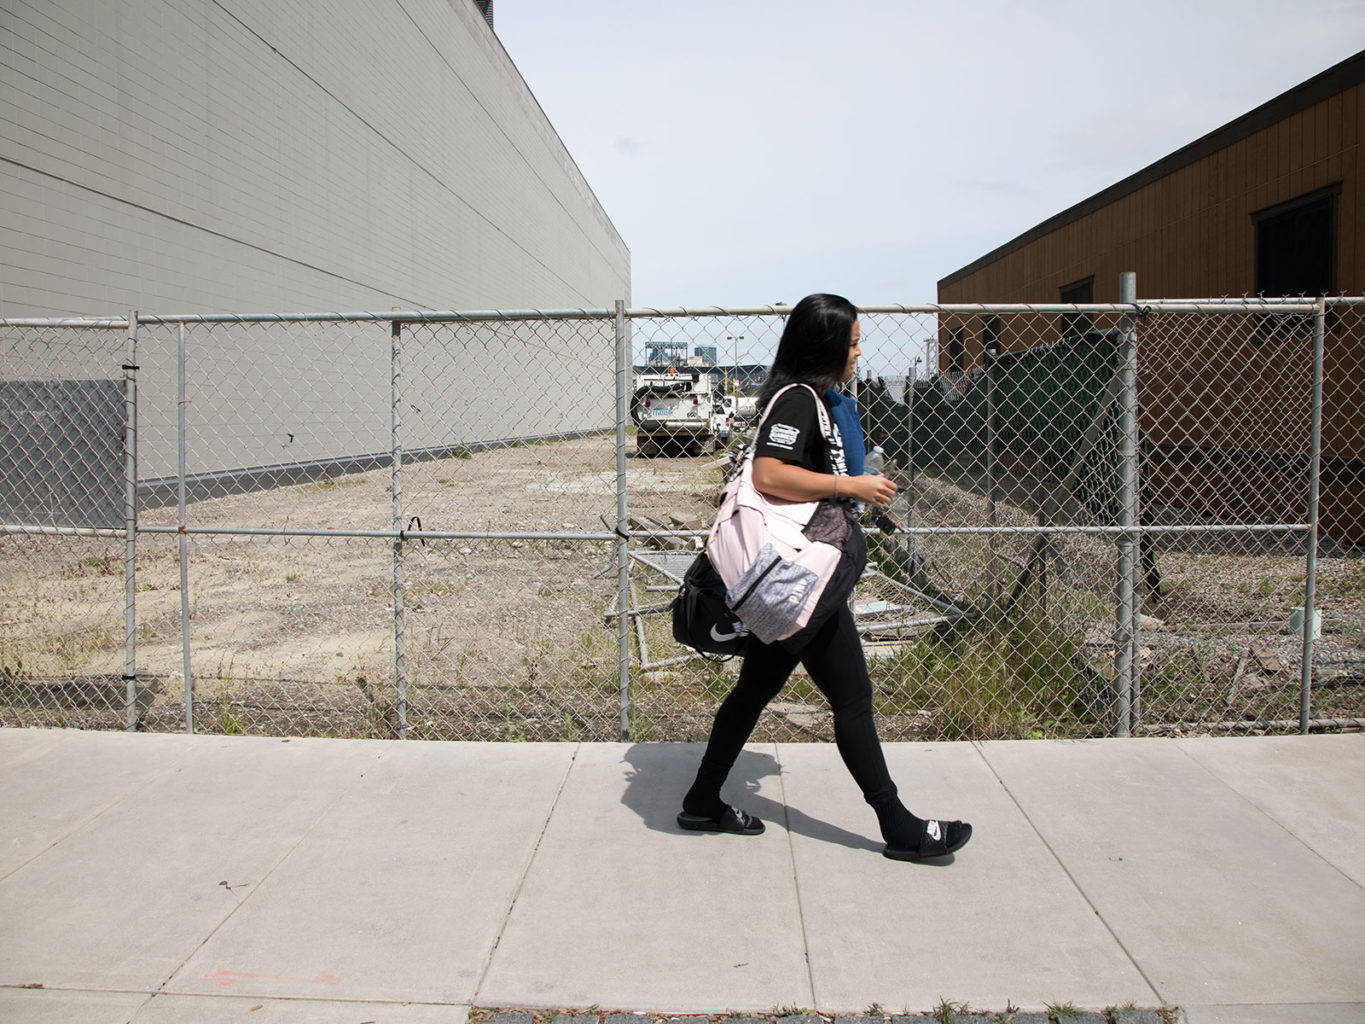 A supportive housing project is planned at this site in Mission Bay next to Police Headquarters. (Steven Ho/2017 Special to S.F. Examiner)